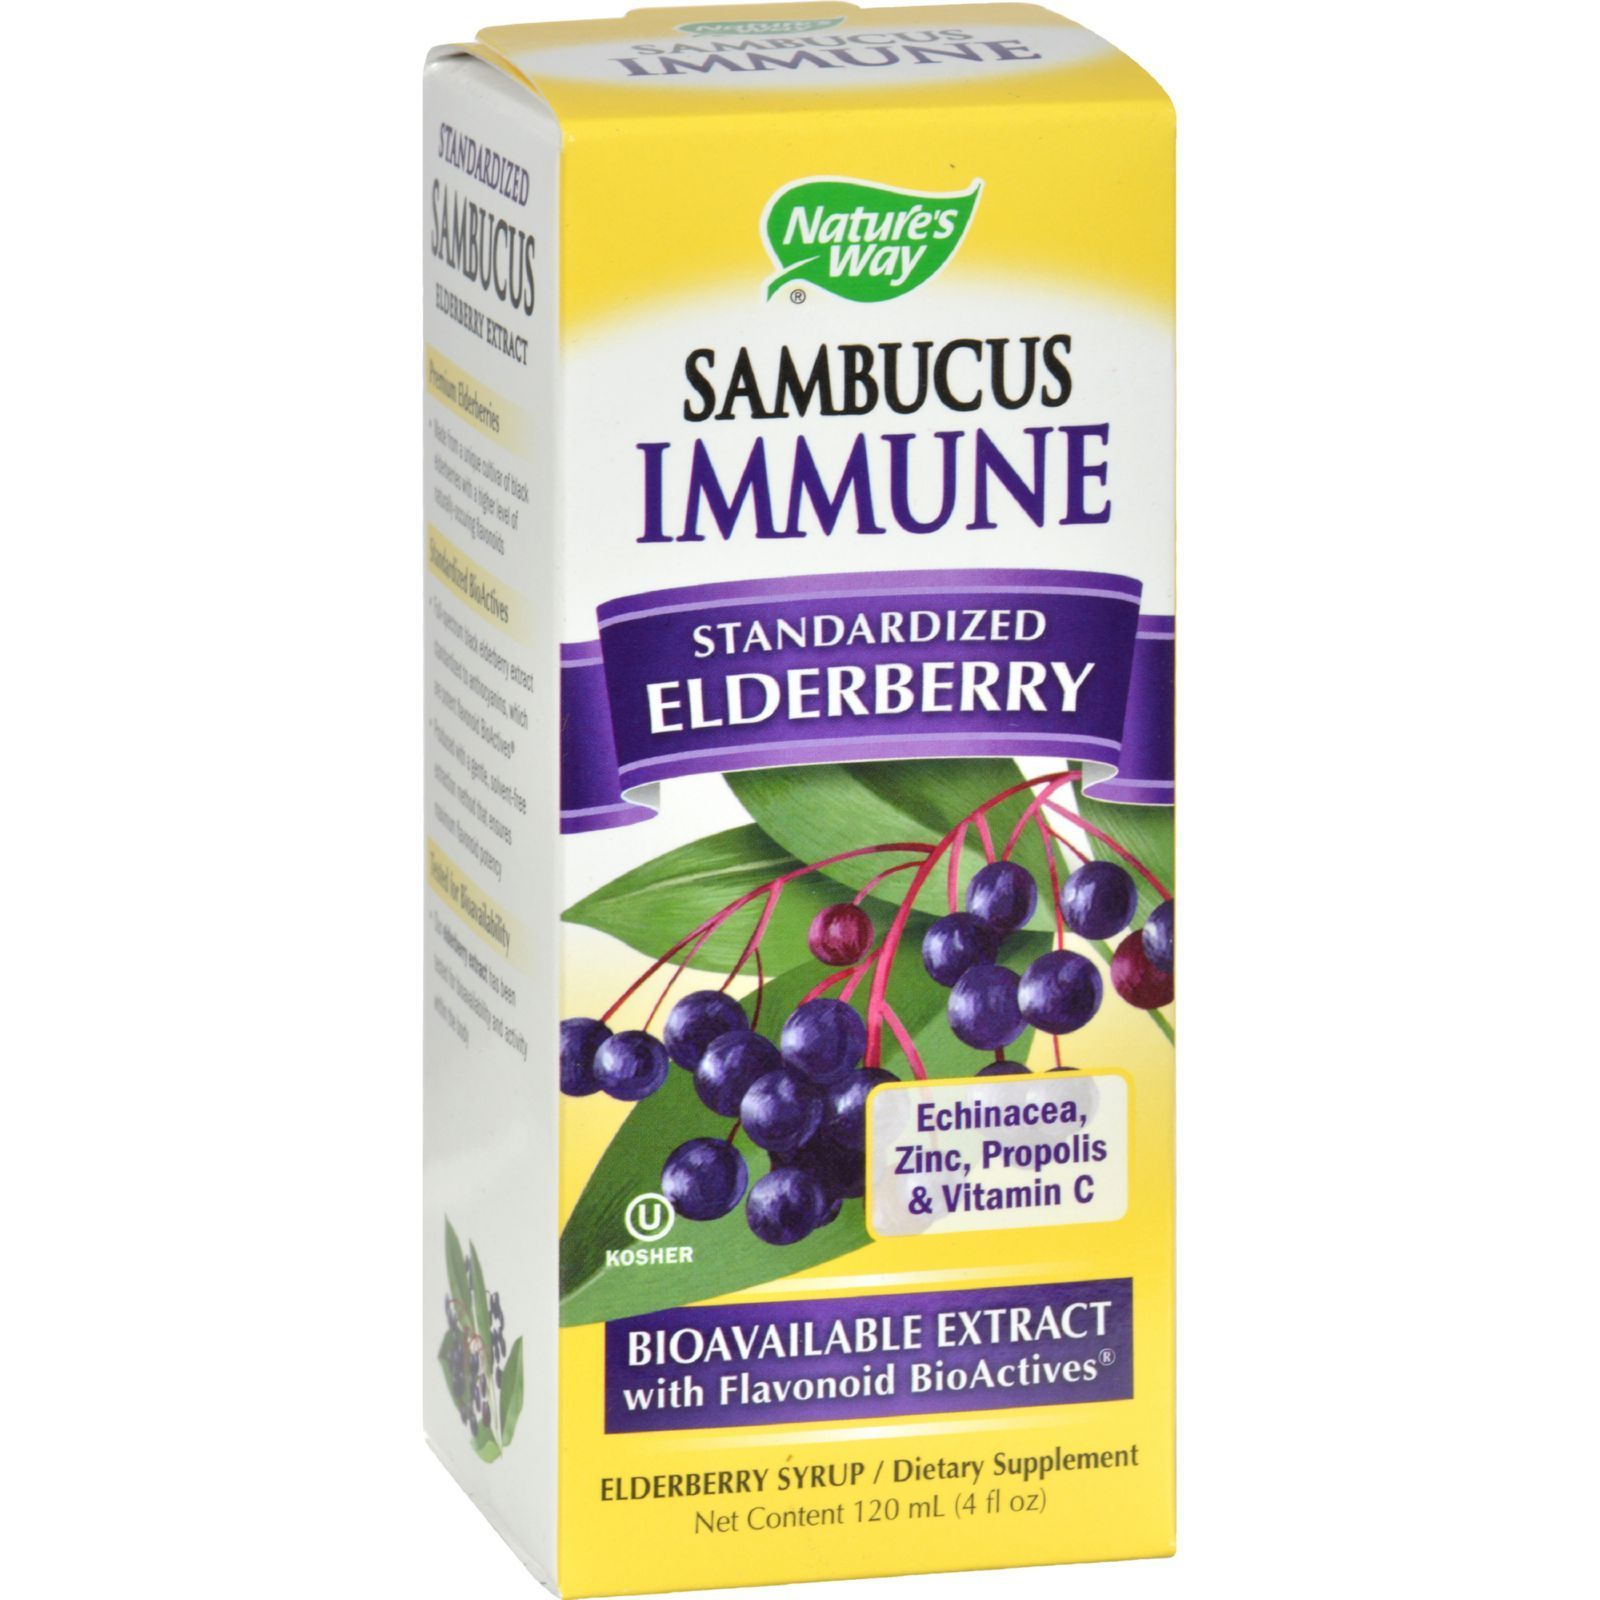 Nature's Way Sambucus Immune Syrup - 4 Fl Oz  #nutrorganics #supplements #goals #organic #health #vi...